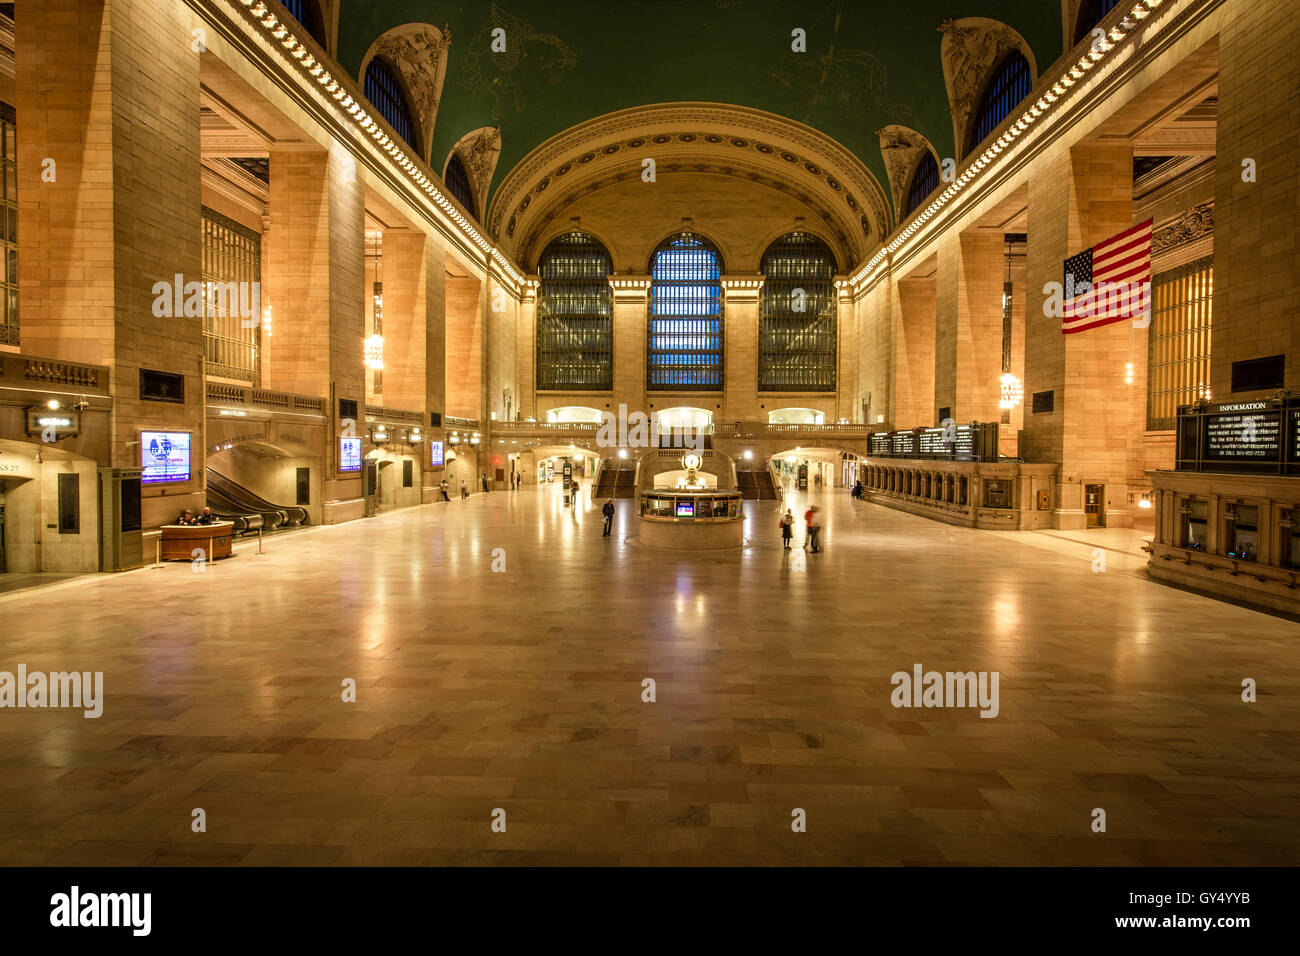 Grand Central Terminal - Stock Image